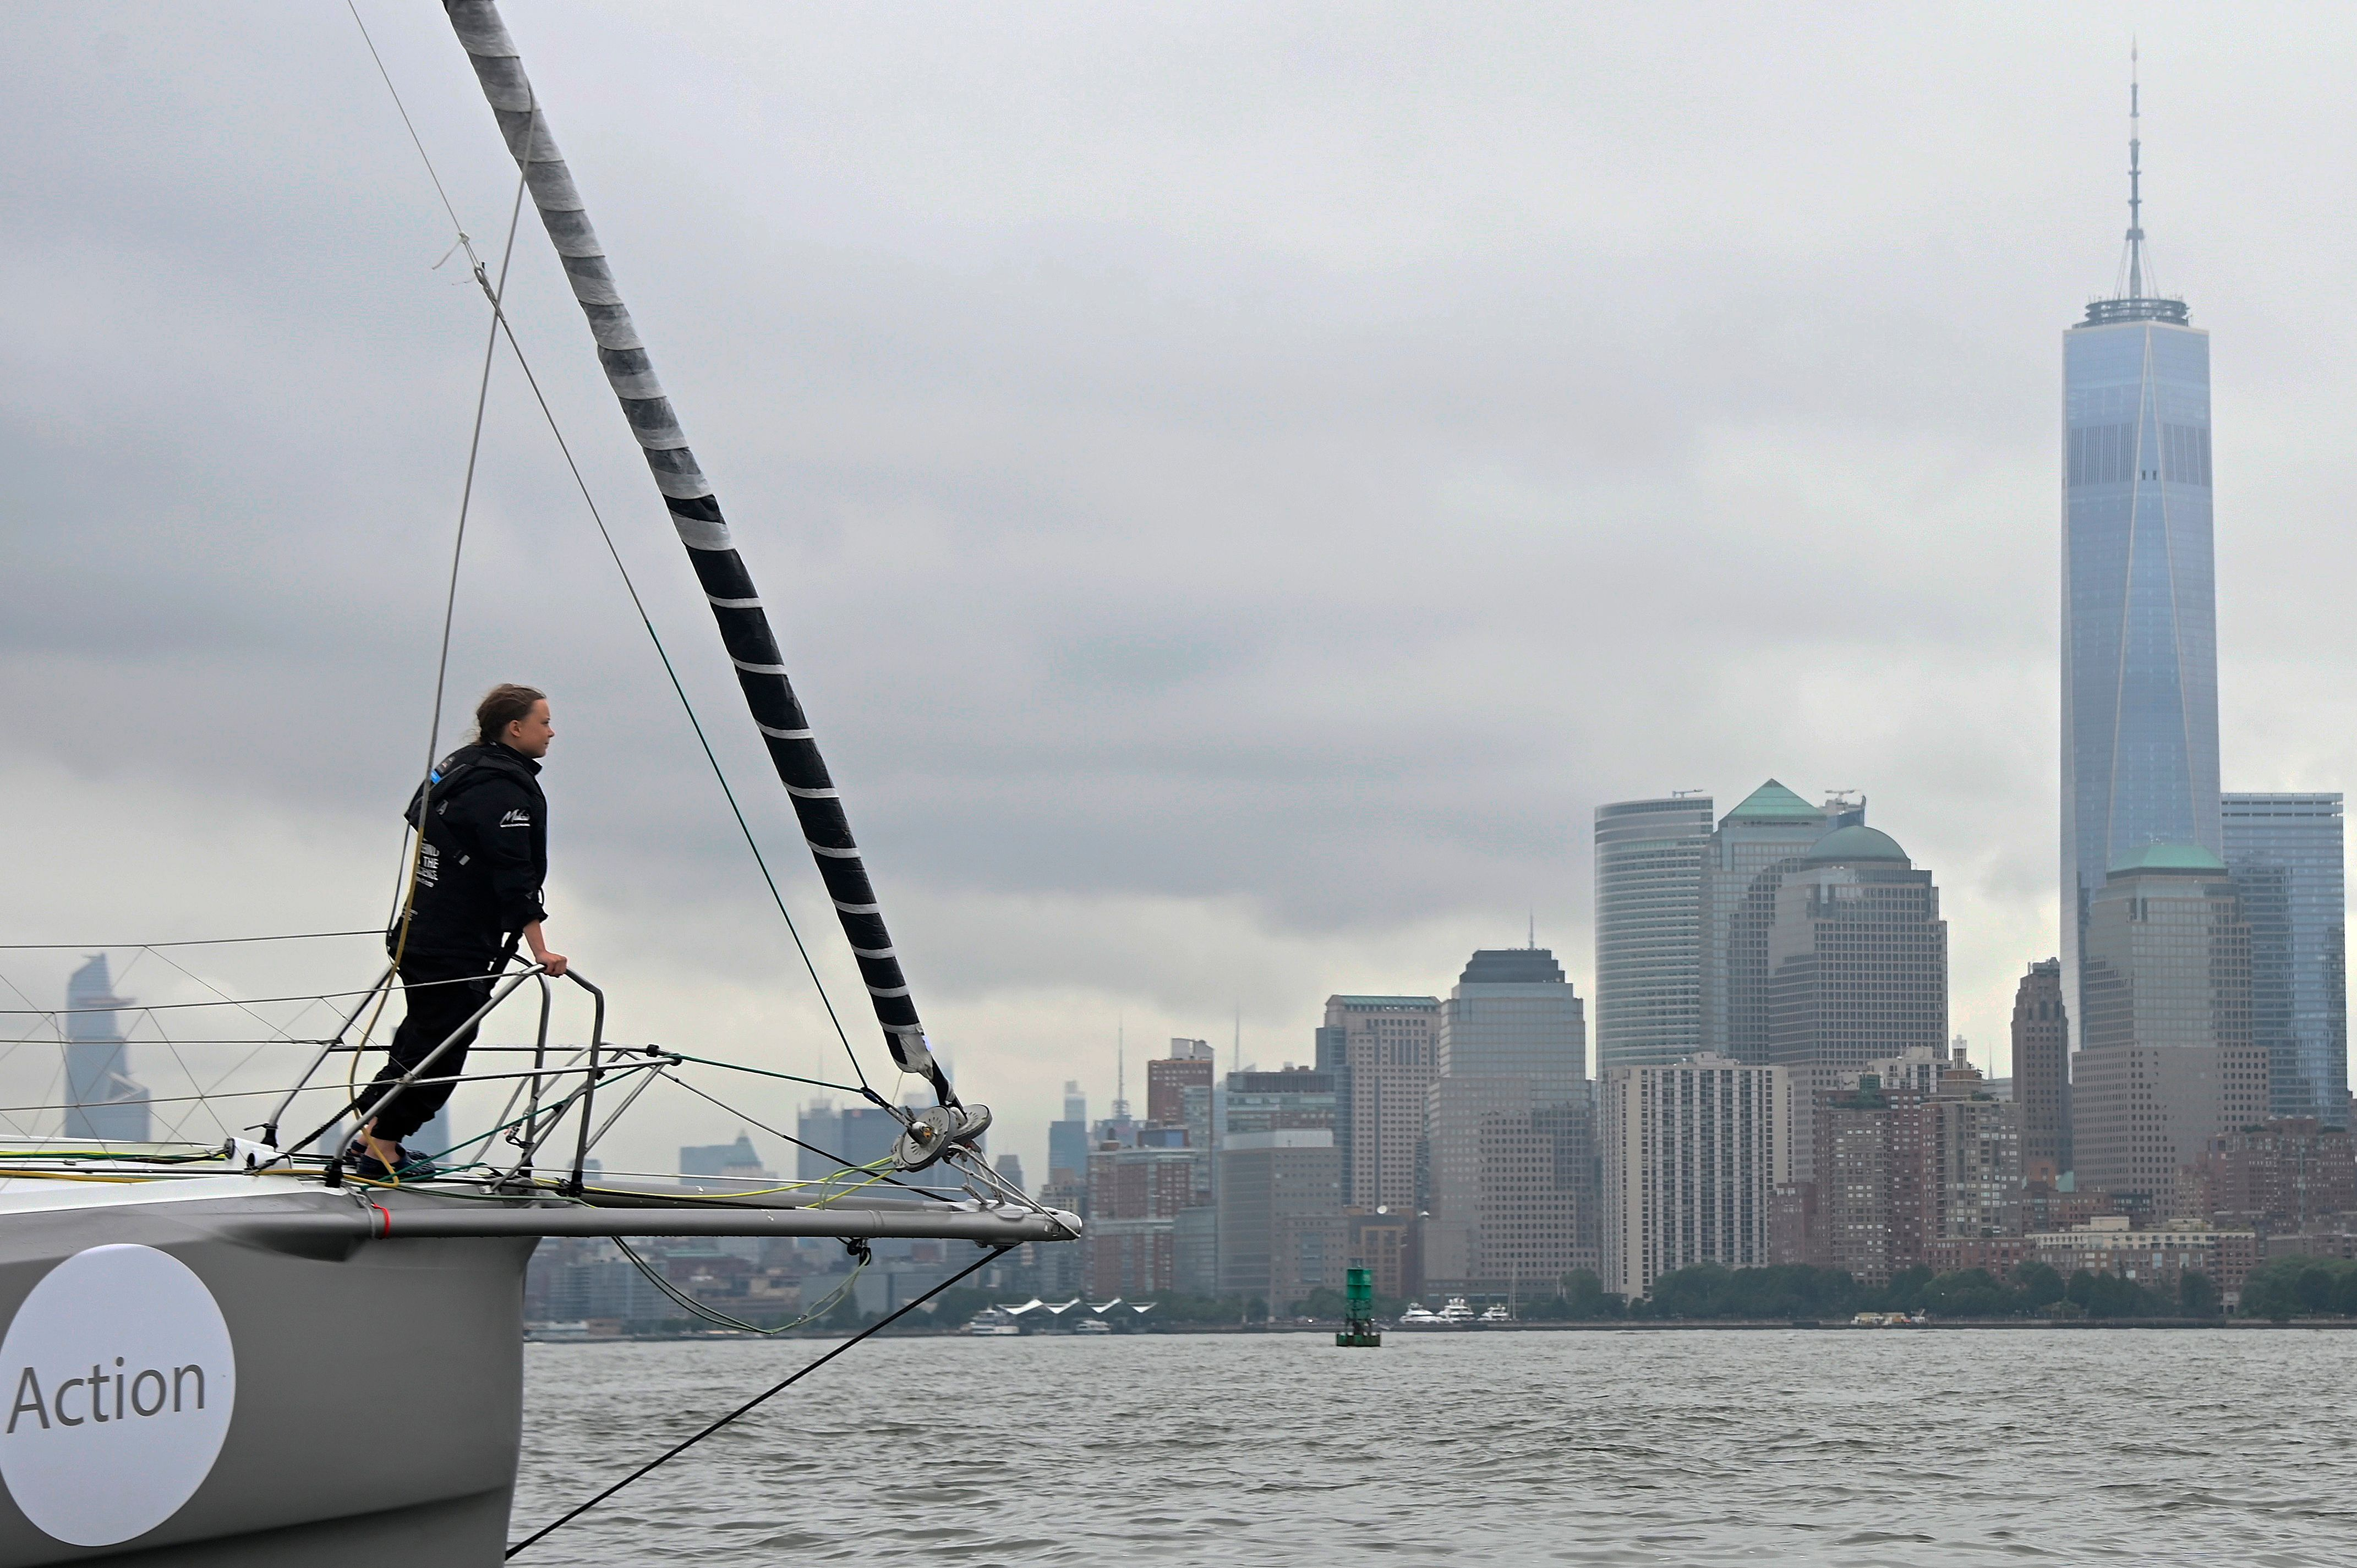 The Malizia II, a zero-carbon yacht, with Swedish climate activist Greta Thunberg, 16, arrives in the US after a 15-day journey crossing the Atlantic in on Aug. 28, 2019 in New York.